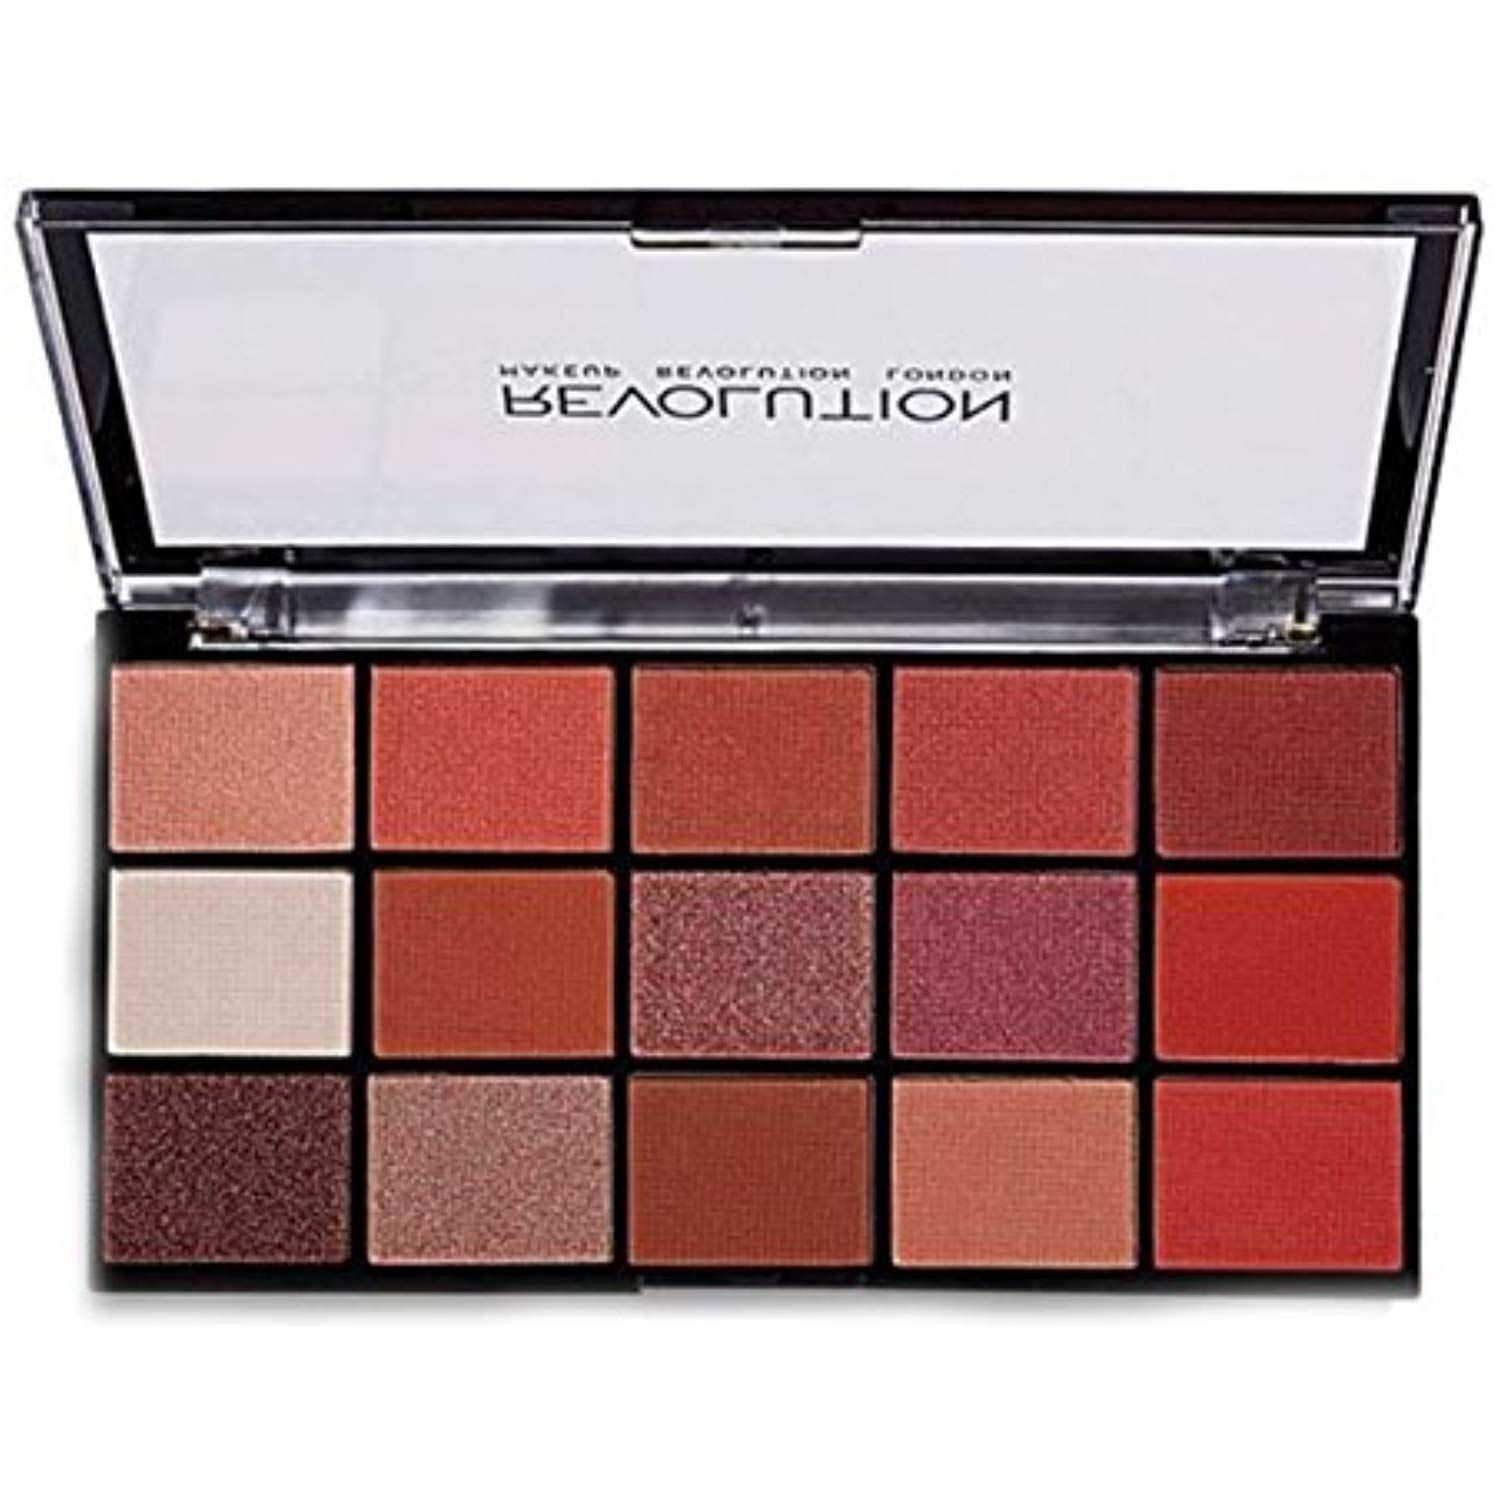 Makeup Revolution Reloaded Eyeshadow Palette, Iconic